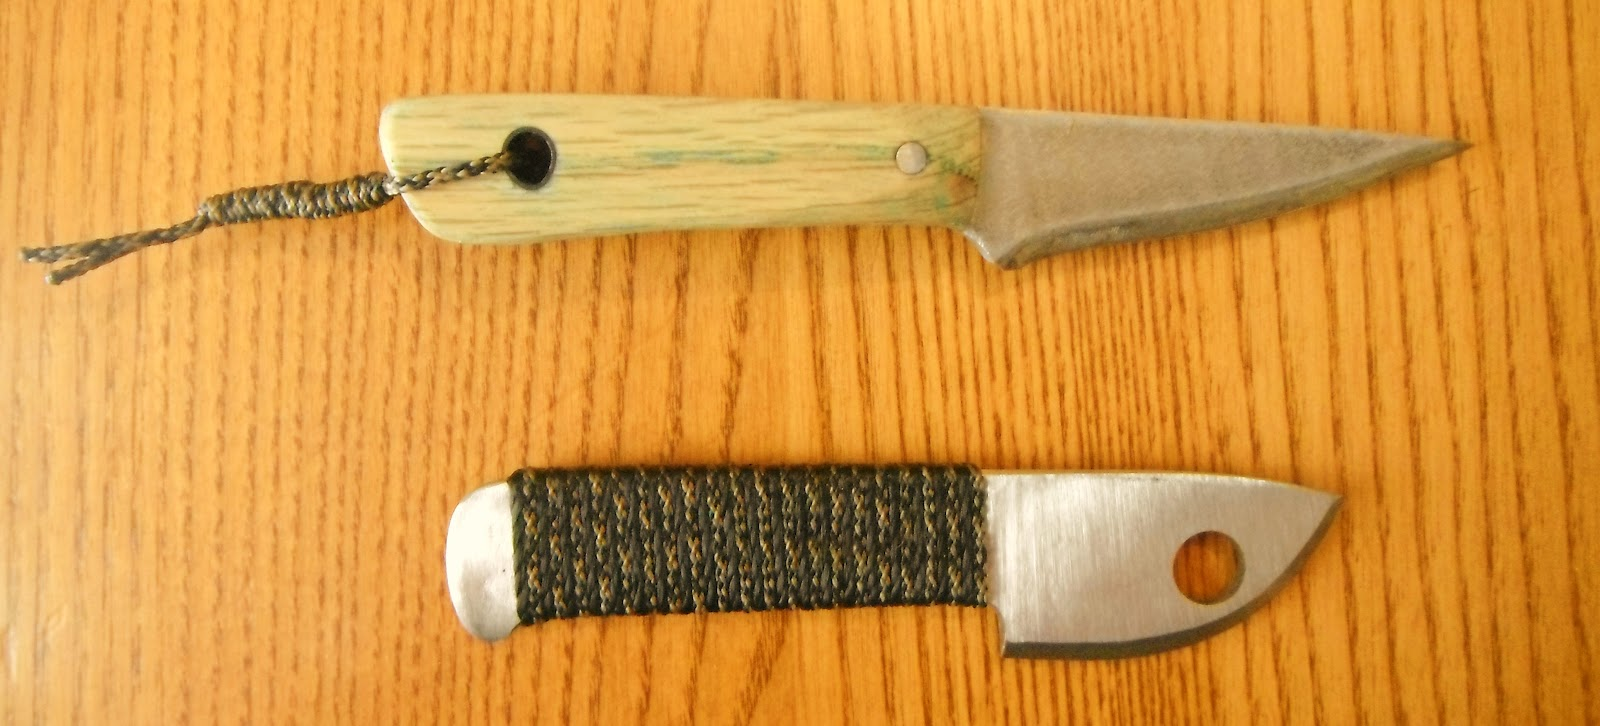 Lawn Mower Blade Knife : The calling lawn mower knives